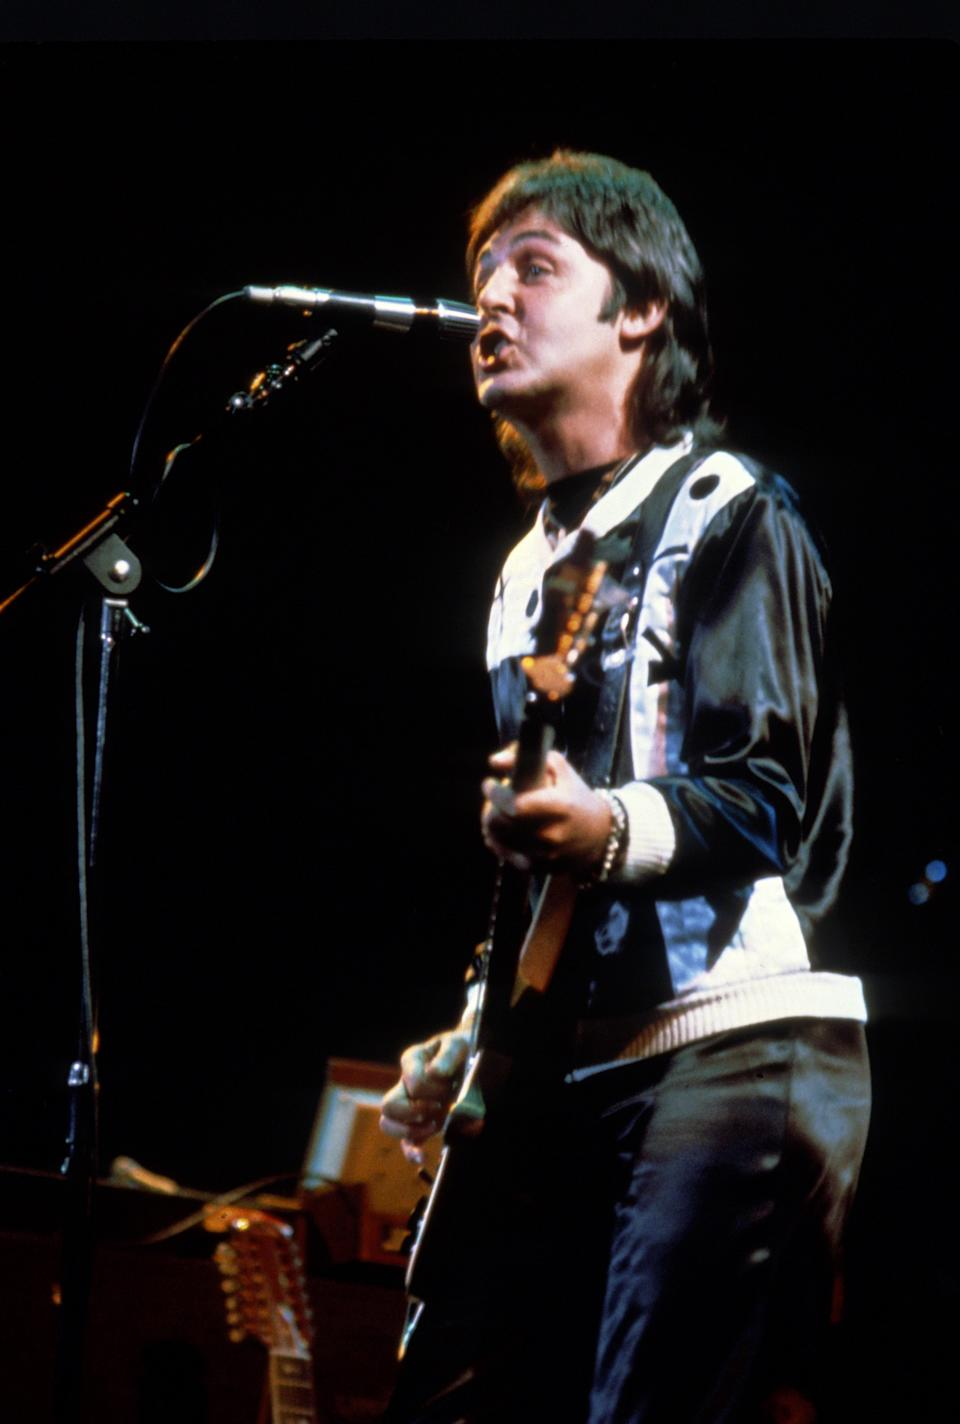 Paul McCartney circa 1981. (Photo by Richard Aaron/IMAGES/Getty Images)